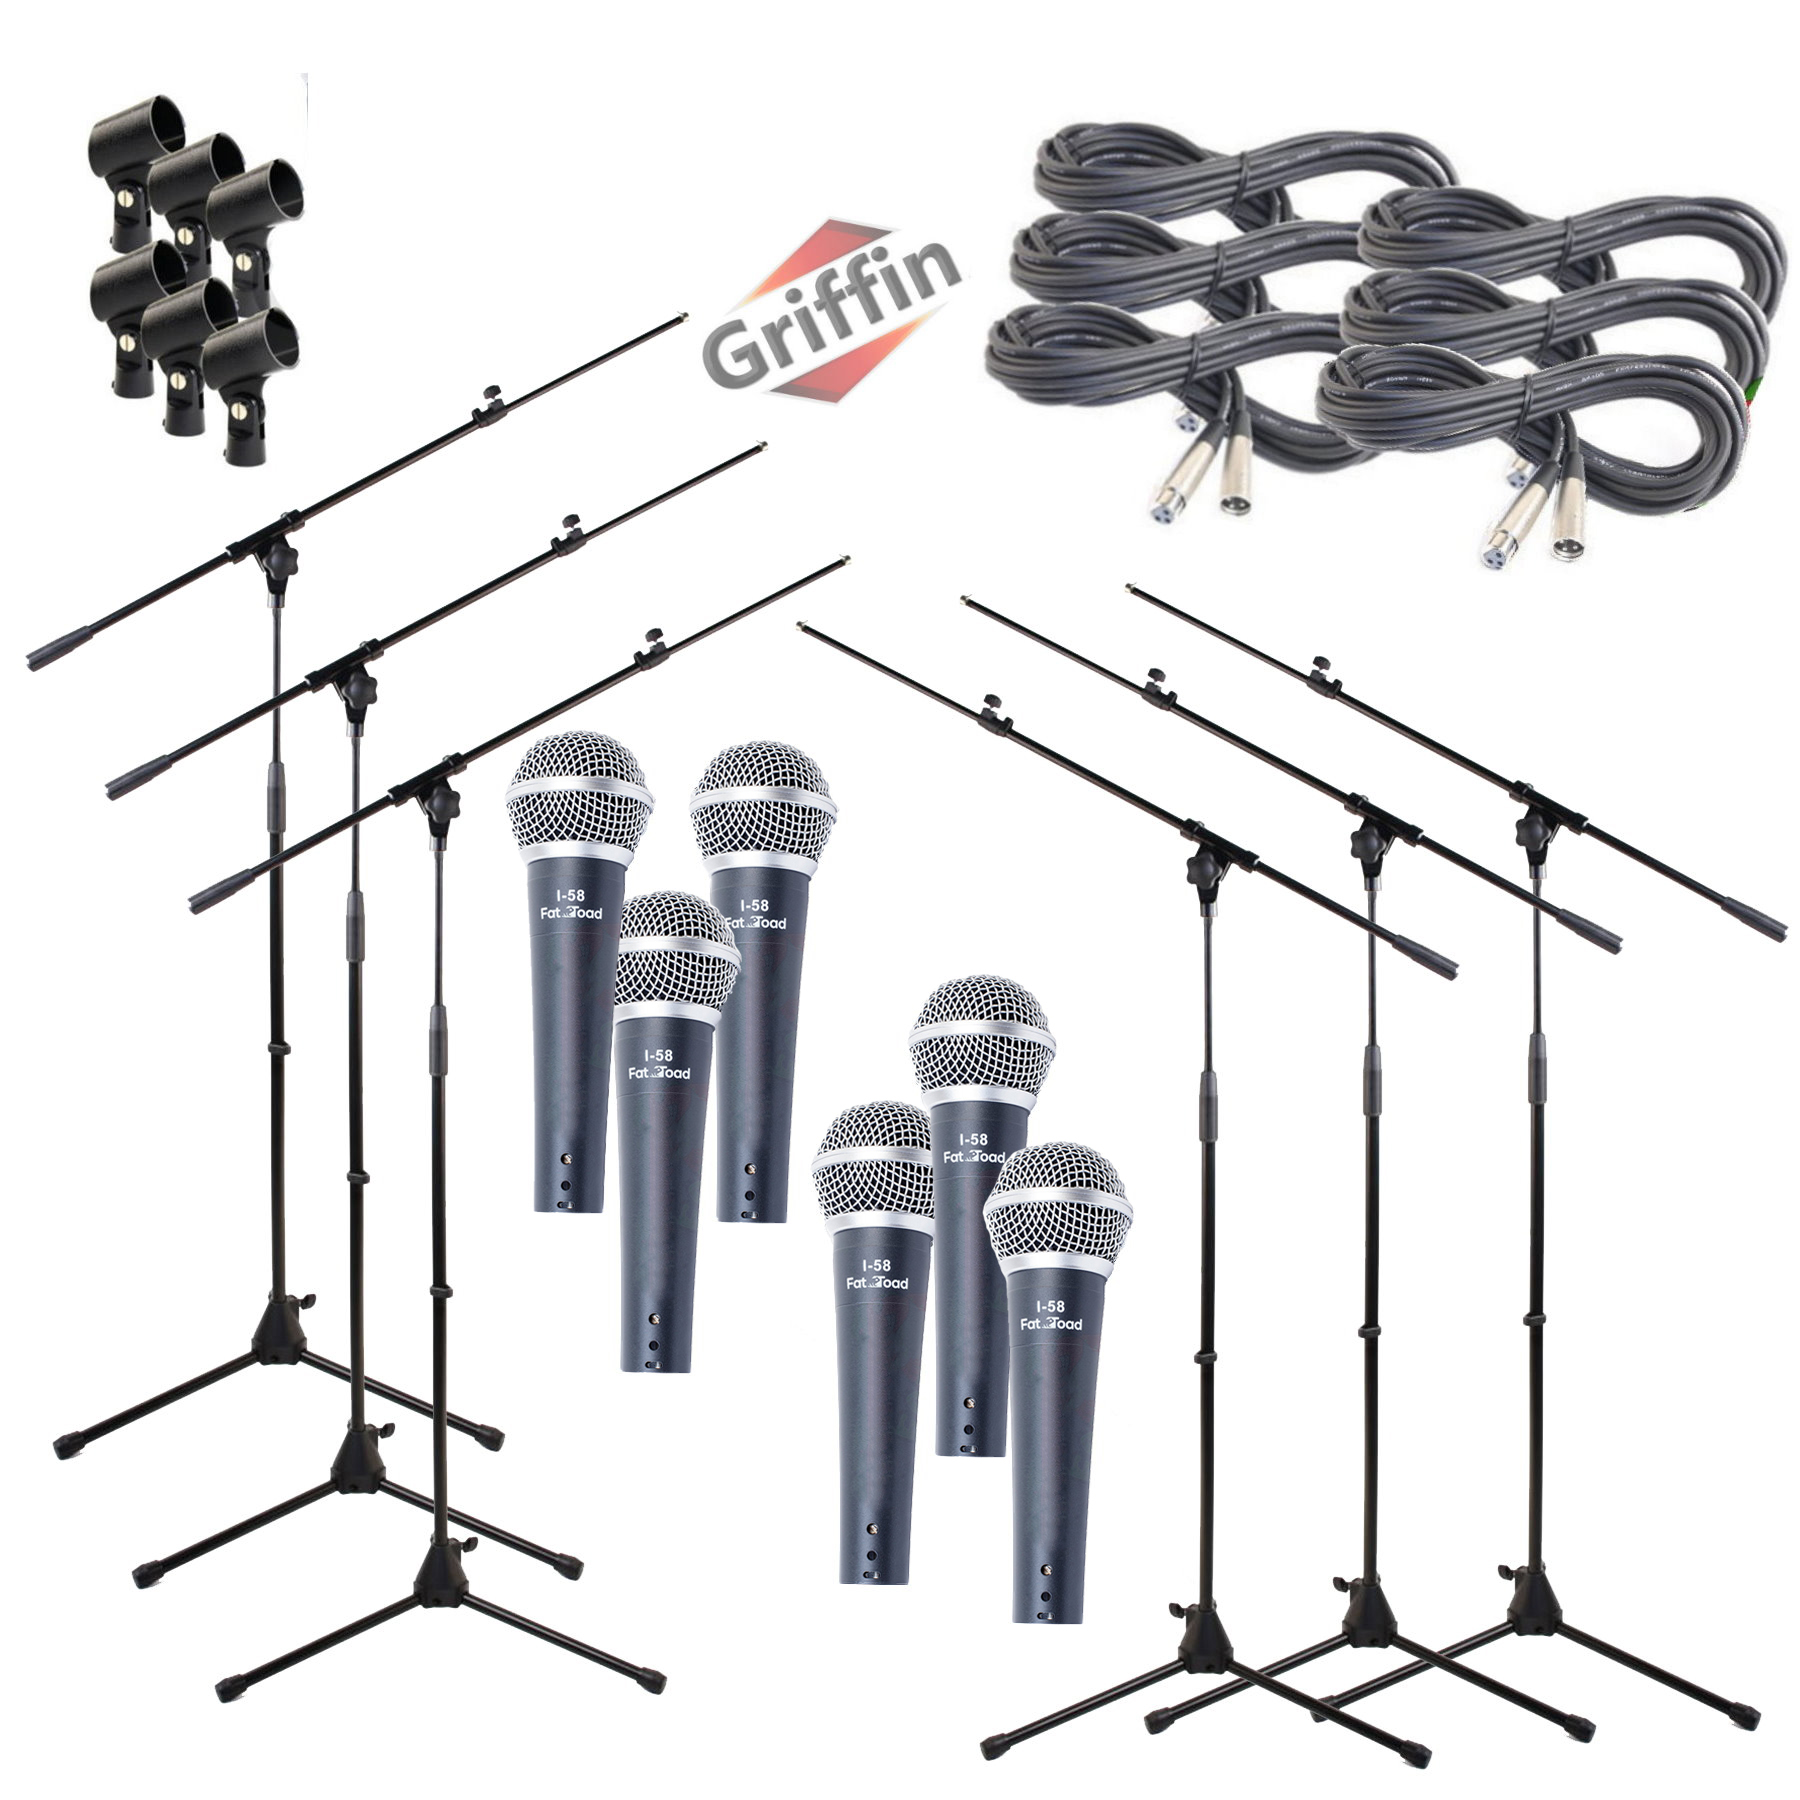 Microphone Boom Stand Package with Cardioid Vocal Microphones & XLR Mic Cables (Pack of 6) by Griffin|Telescoping Arm Holder with Tripod Mount|Handheld Unidirectional Mics for Music Studio Recording